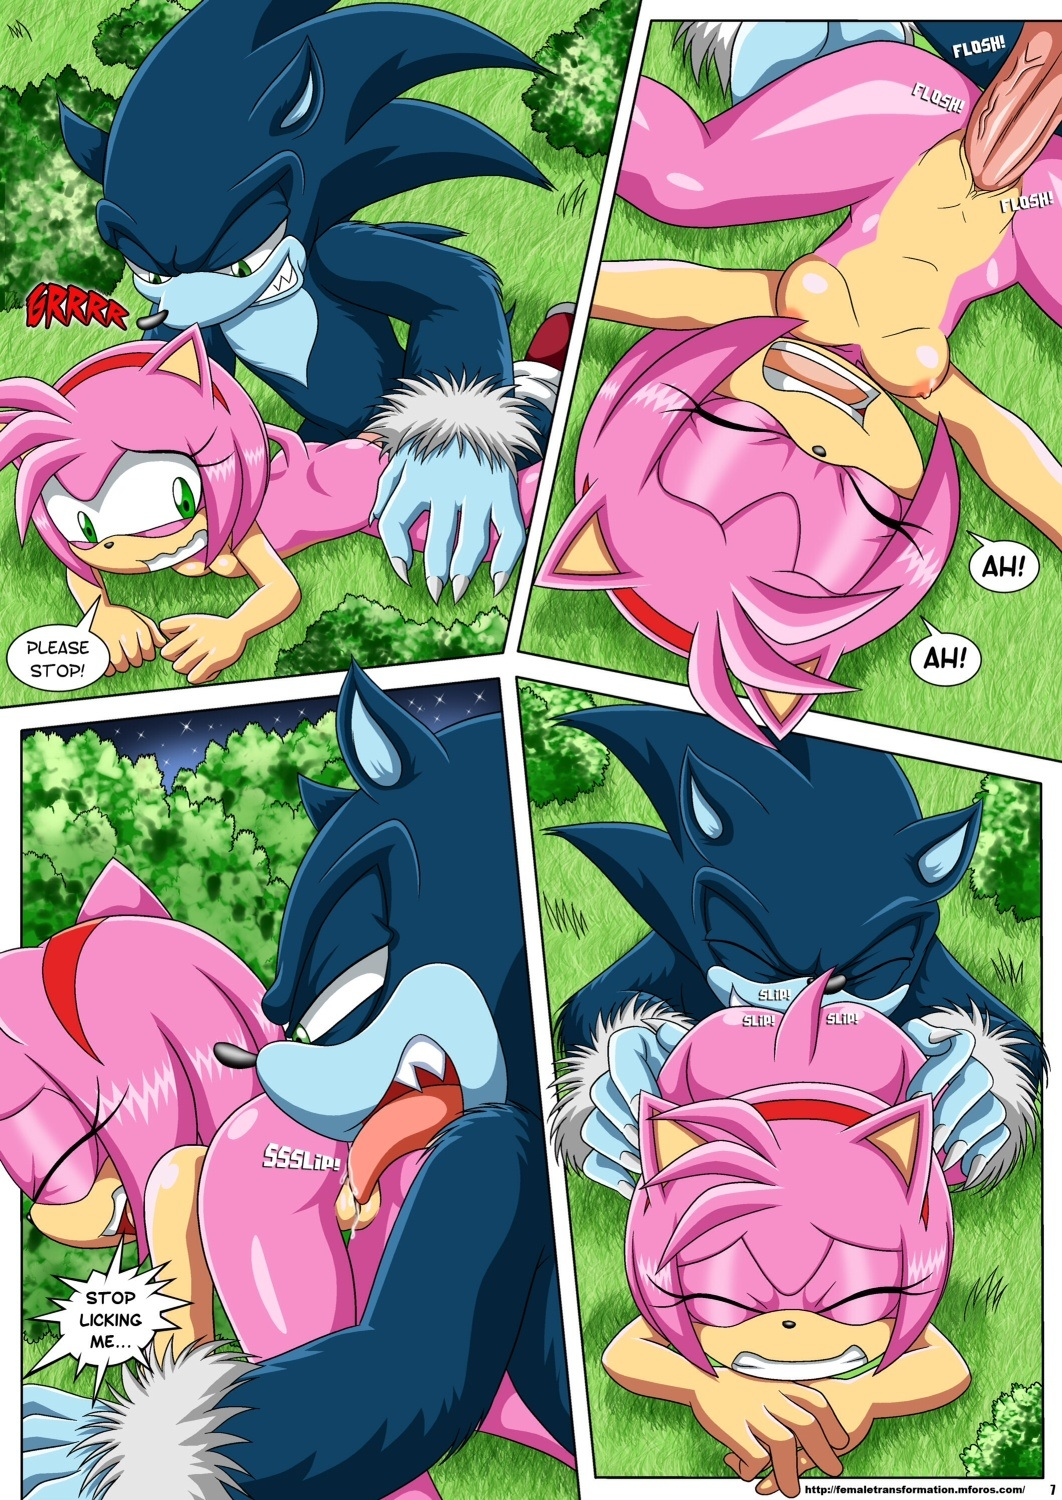 amy_rose bbmbbf comic crying horny licking licking_pussy mobius_unleashed palcomix rape rape_face sad scared sega sex sonic sonic_team sonic_the_hedgehog sonic_the_werehog text the_werehog